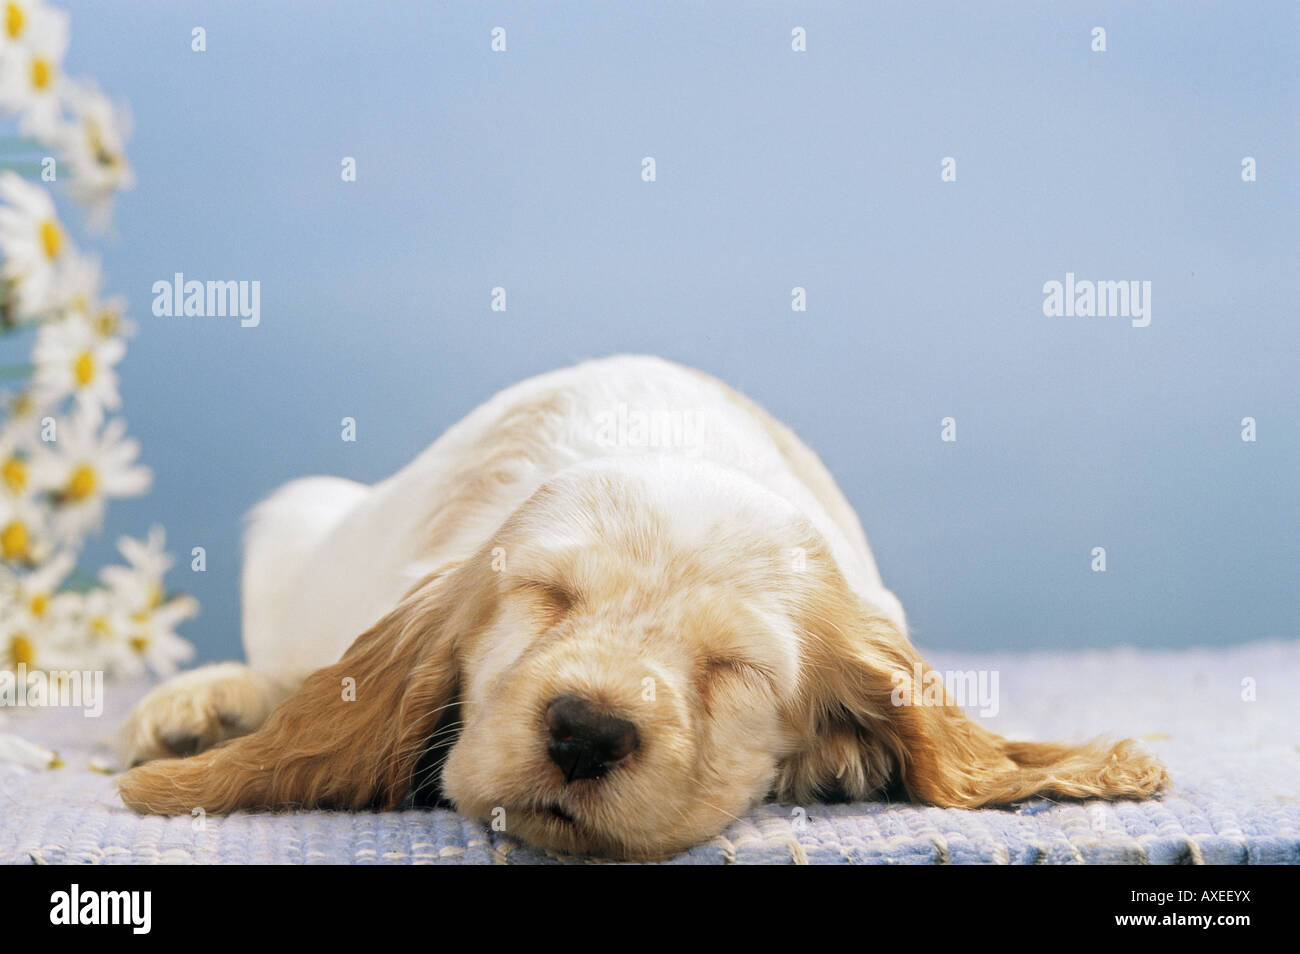 Cocker Spaniel puppy - sleeping - Stock Image